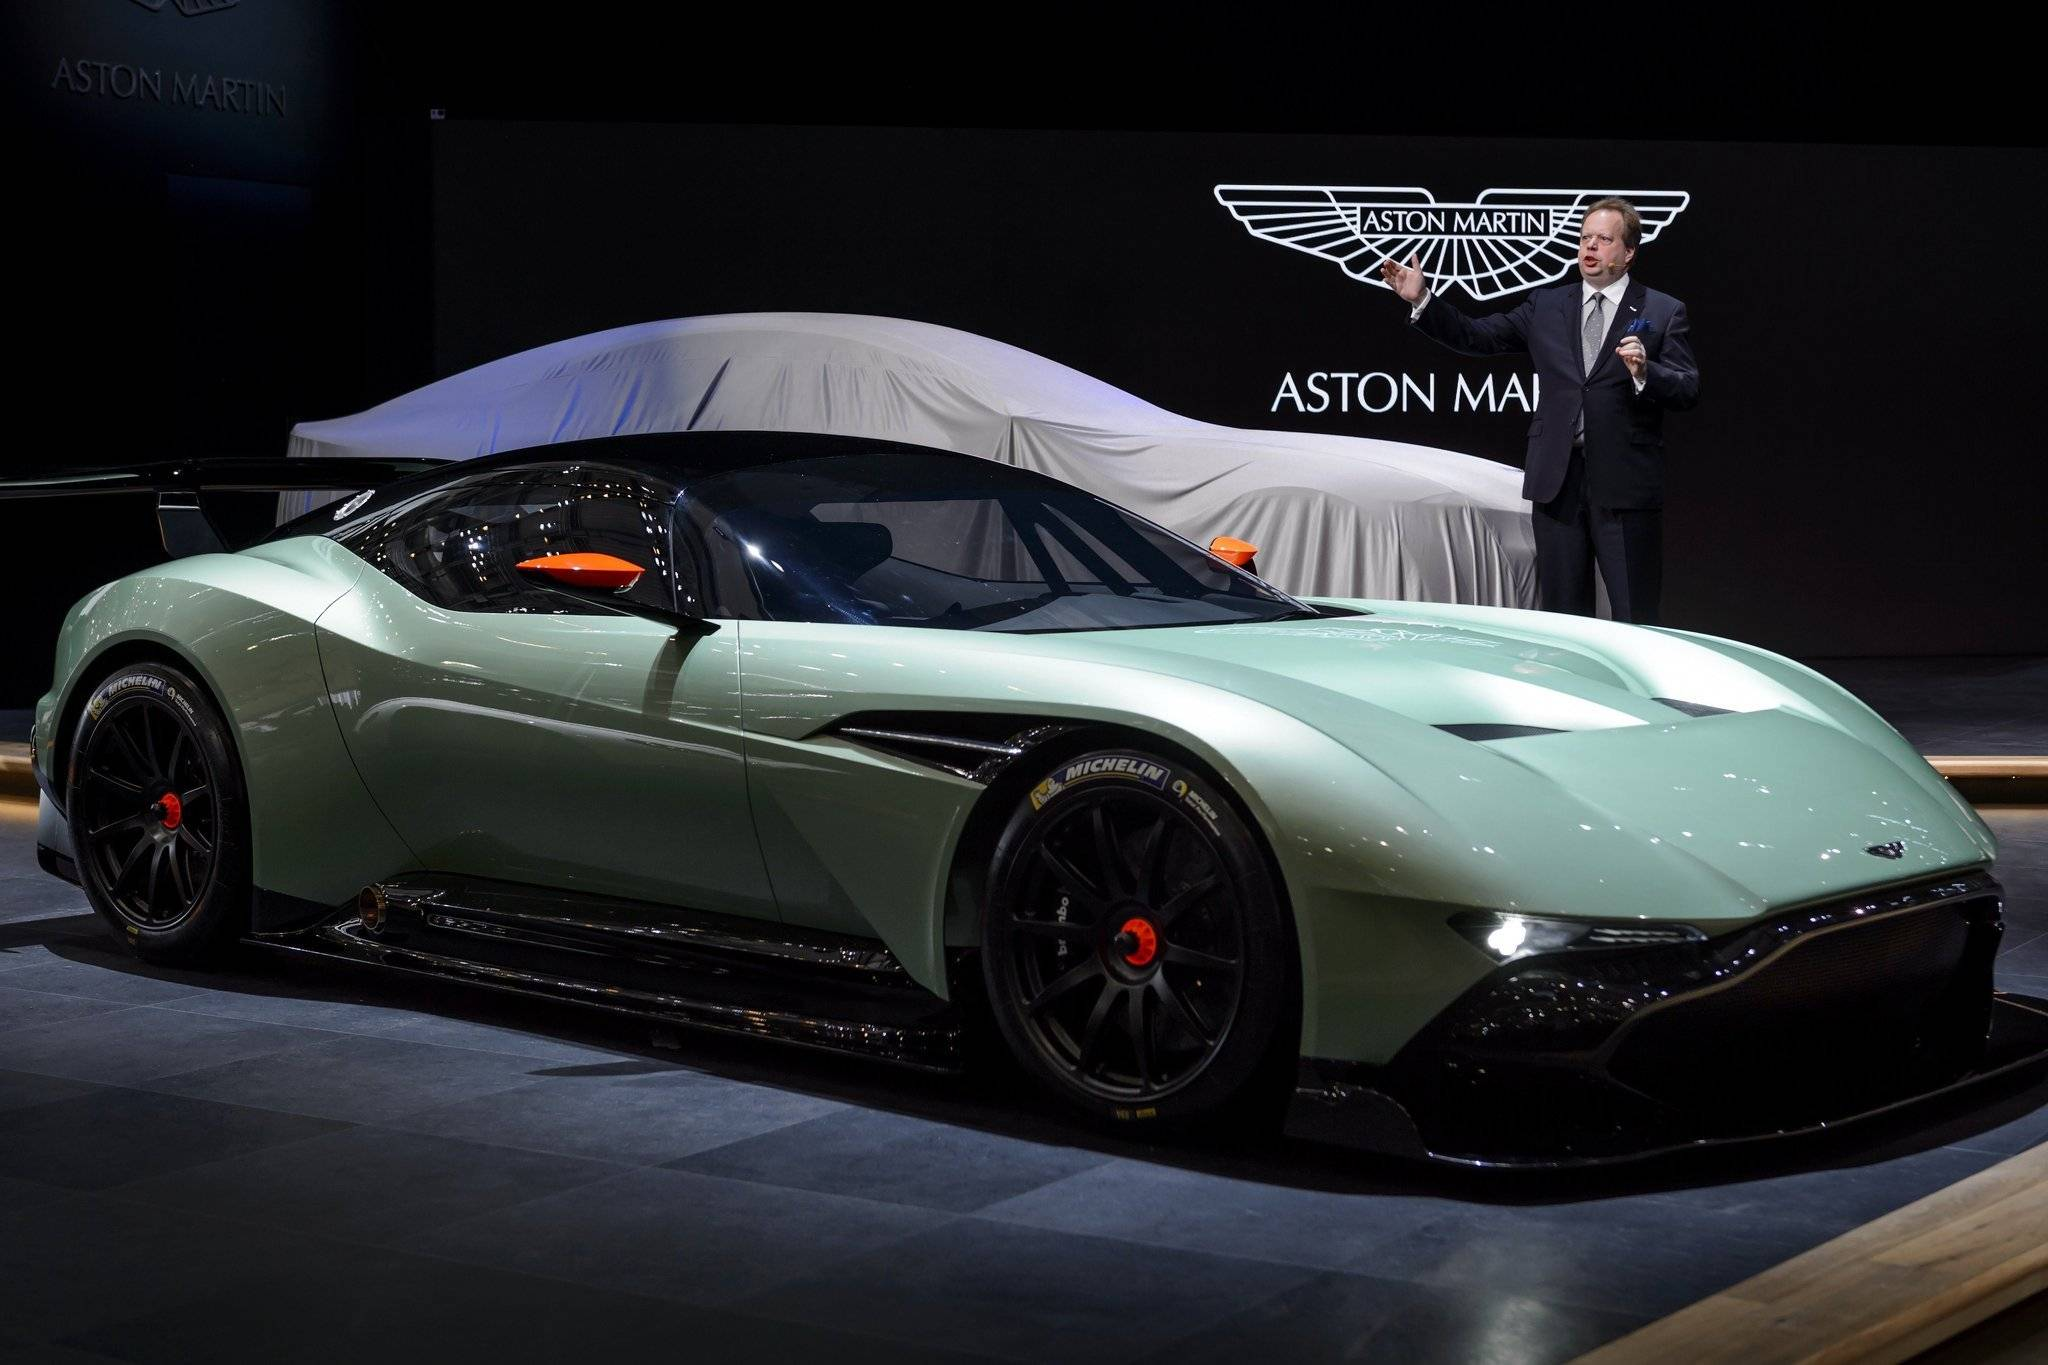 Aston Martin Vulcan Specifications Starr Luxury Car Hire UK - Aston martin specs